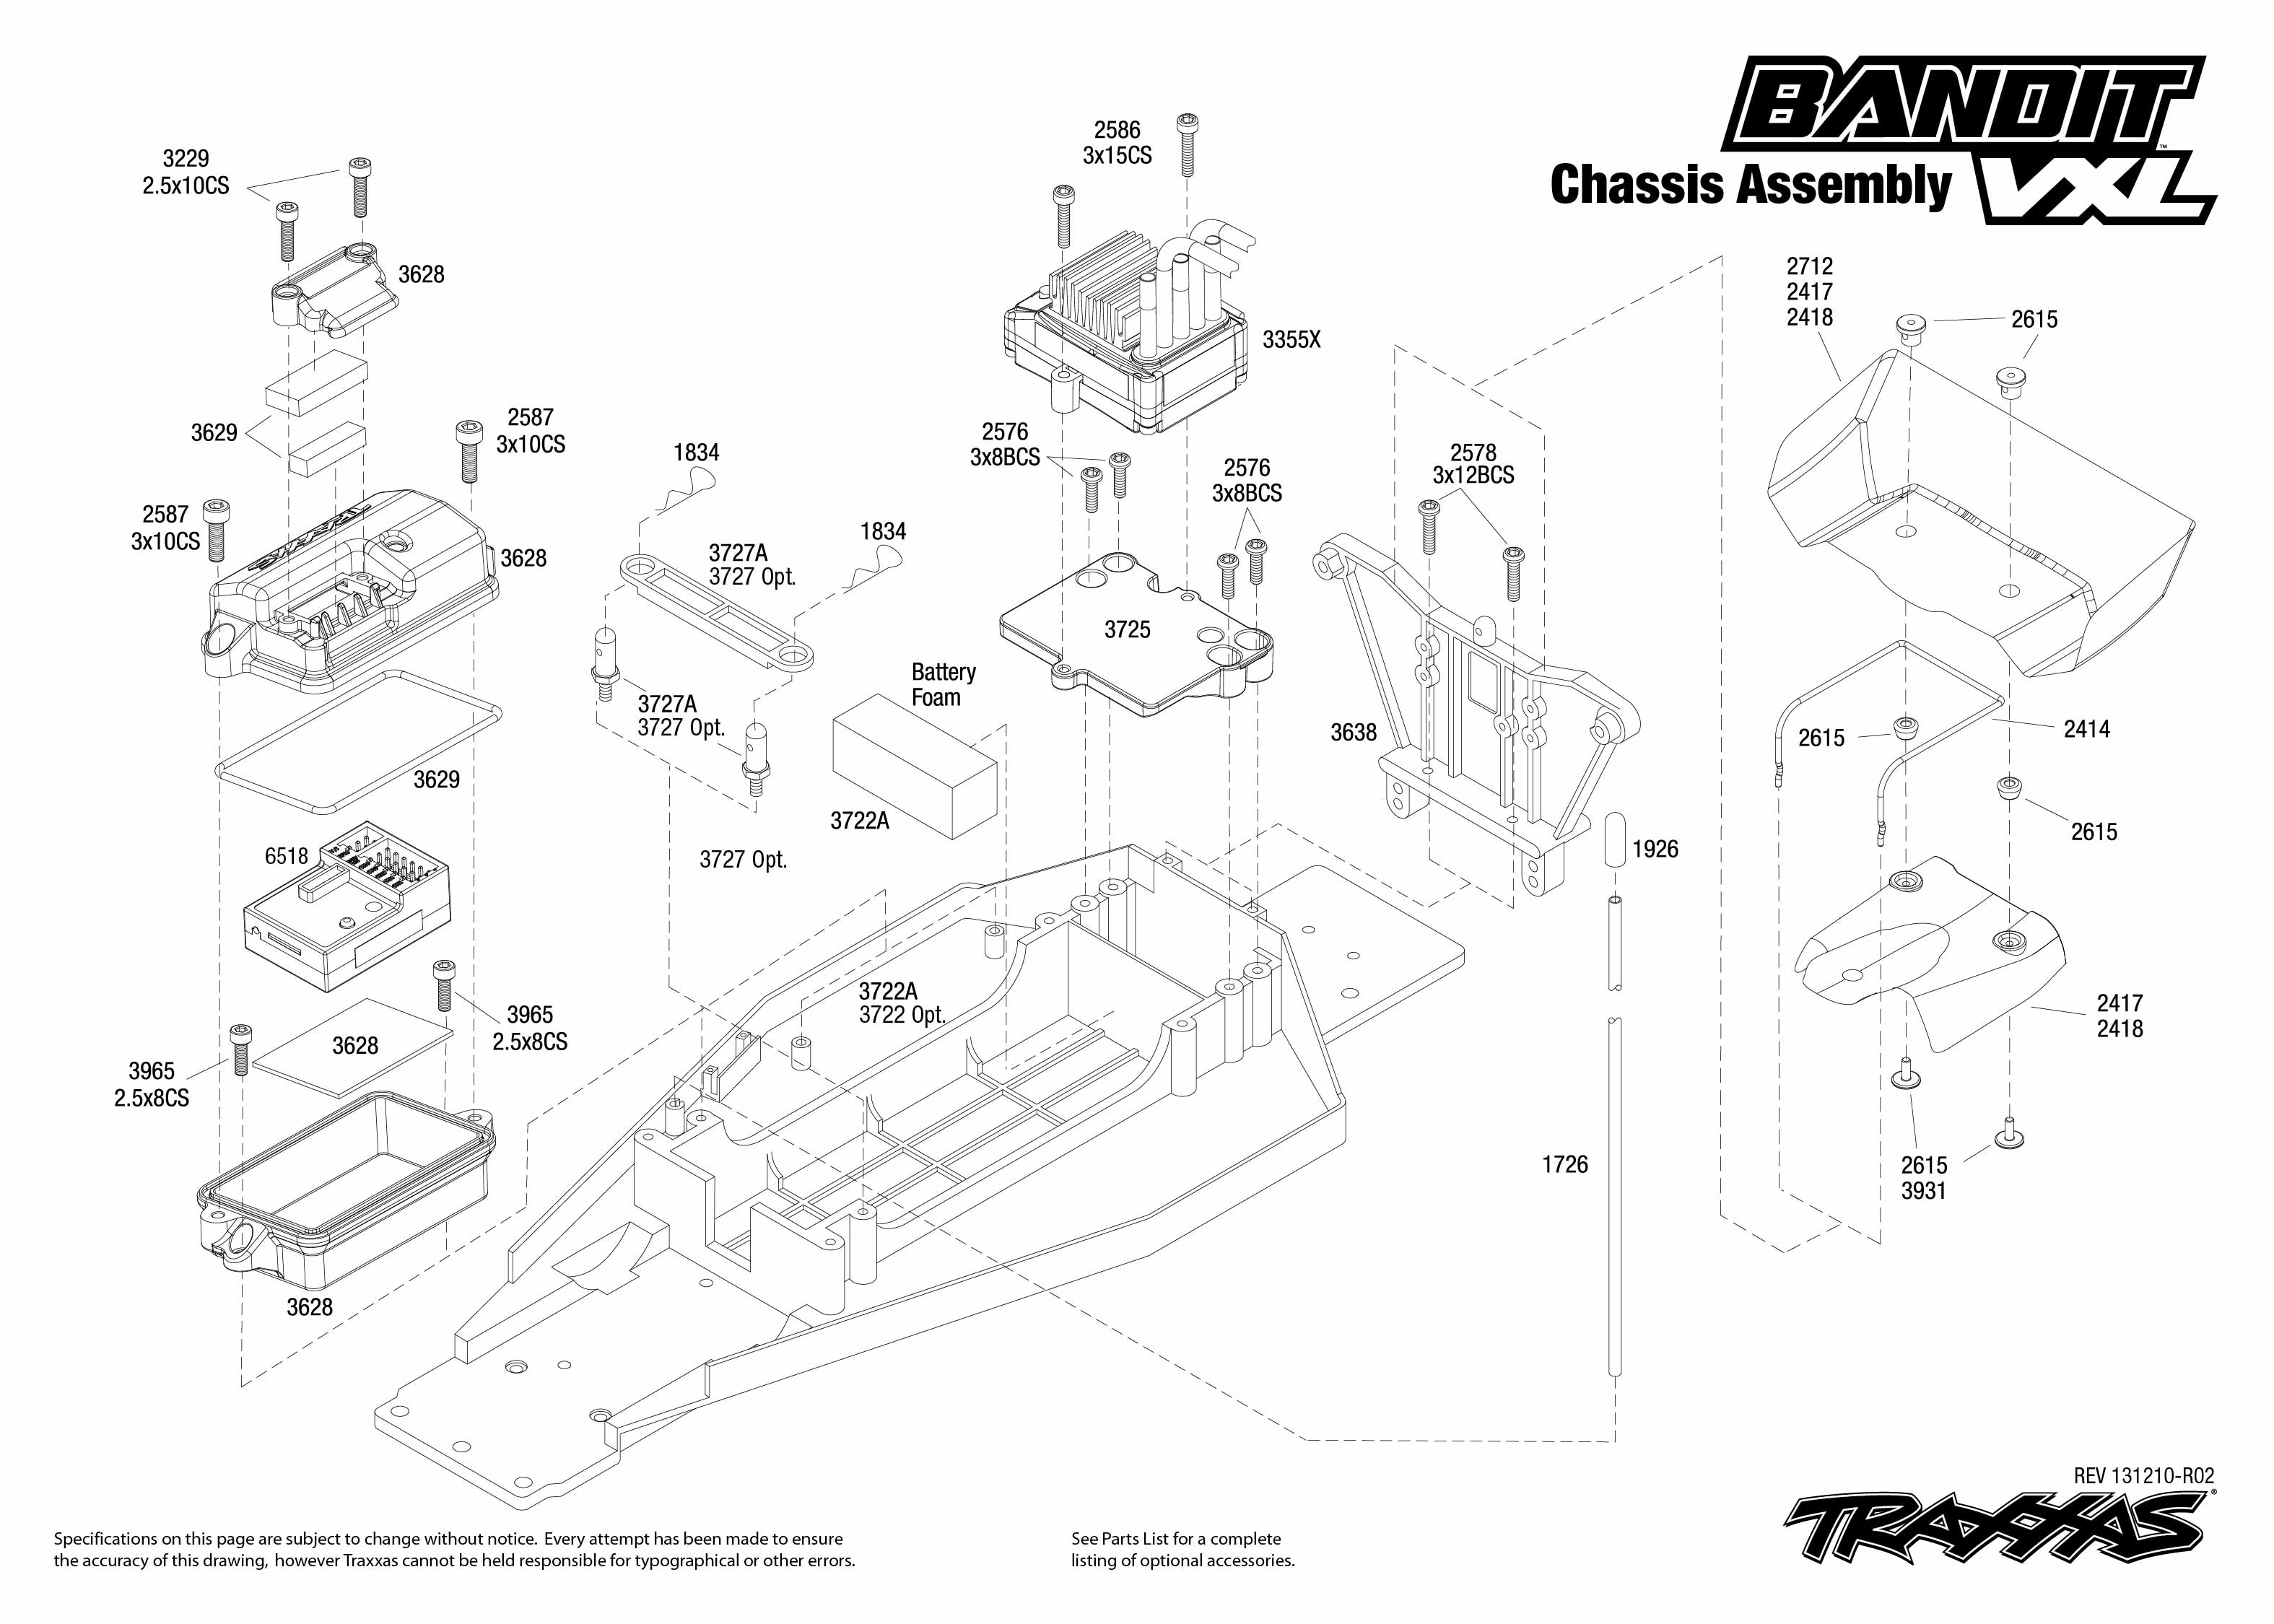 Chassis Exploded View Bandit Vxl